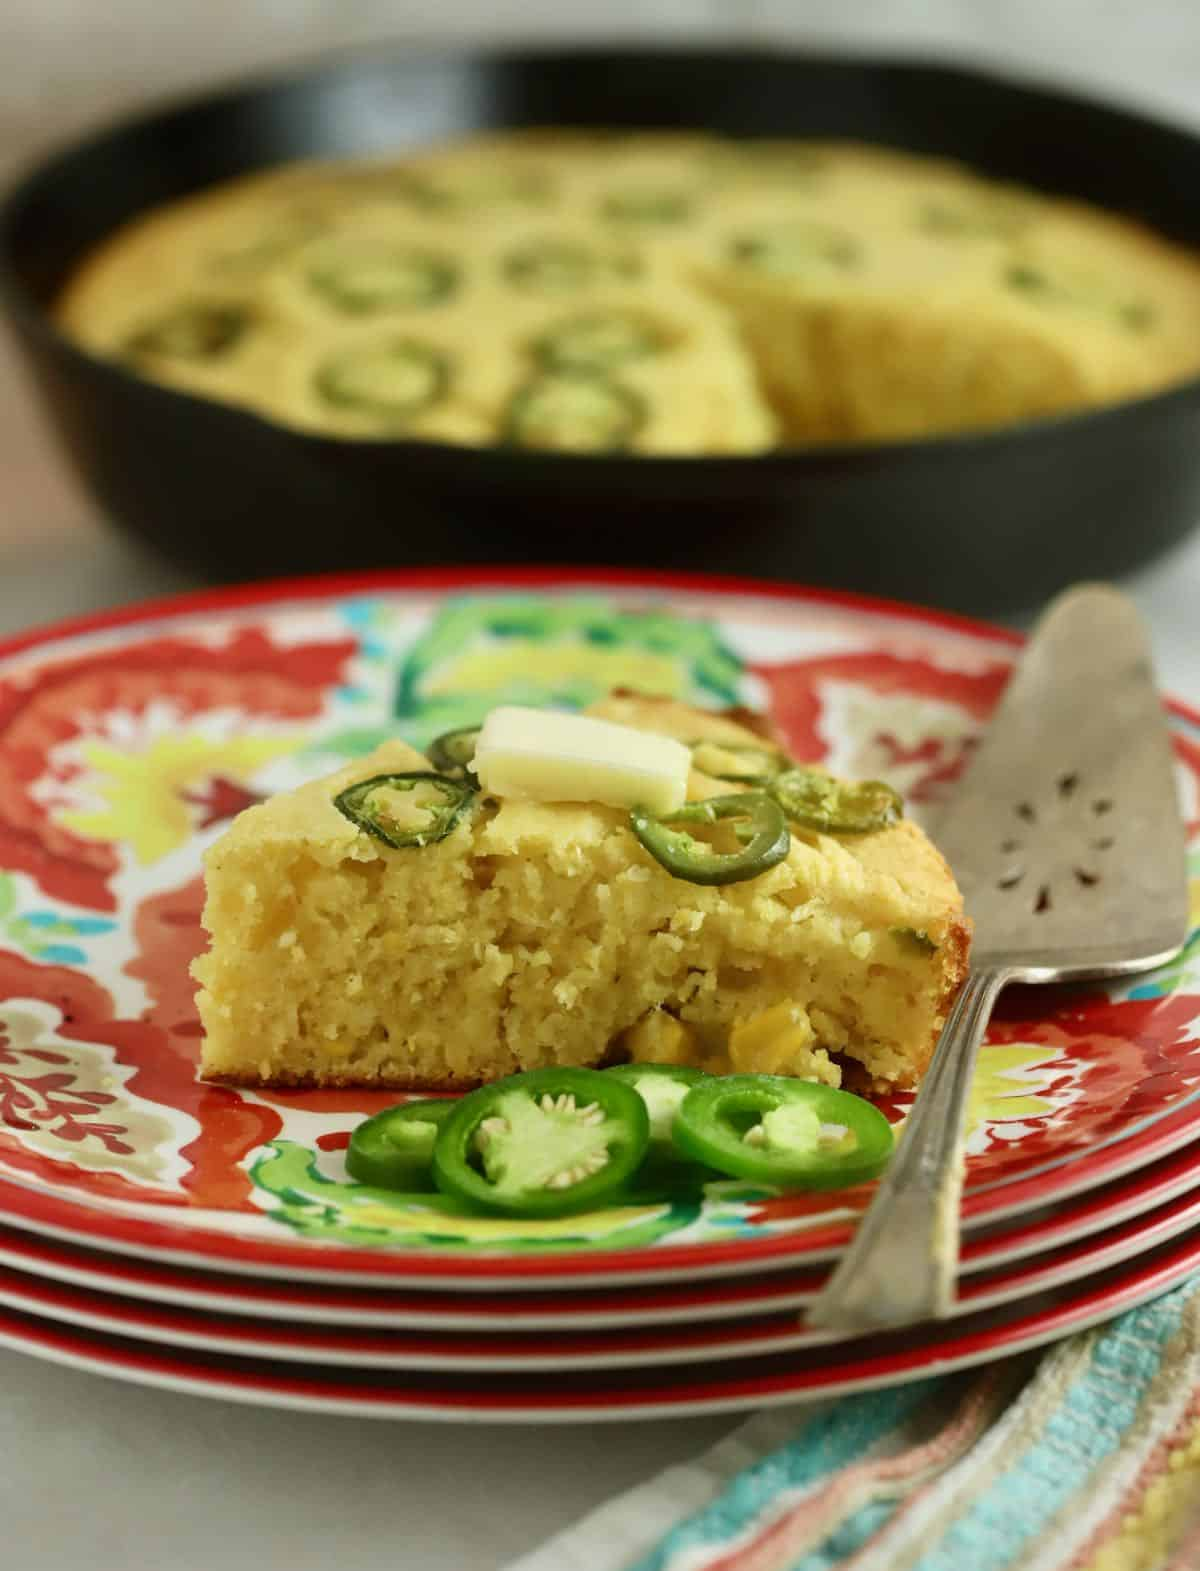 A slice of jalapeno cornbread on a colorful Mexican plate.